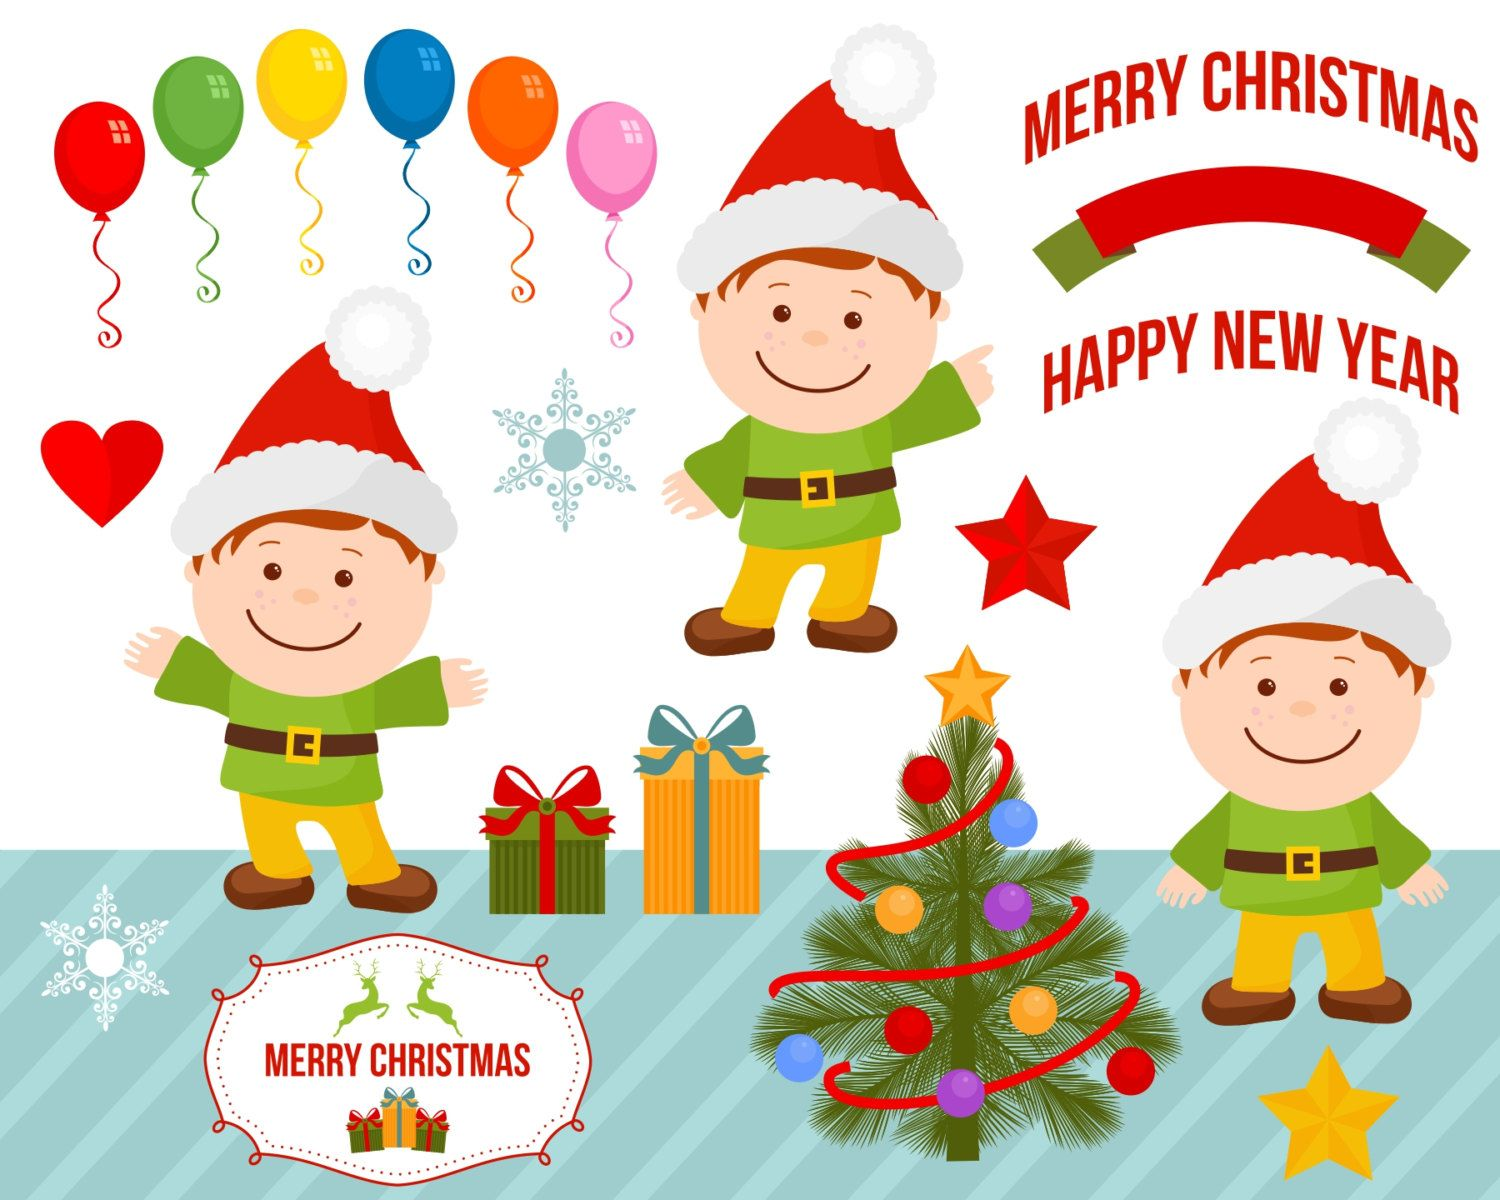 Boy Gnome Christmas Party Clipart Clip Art Balloons Gifts